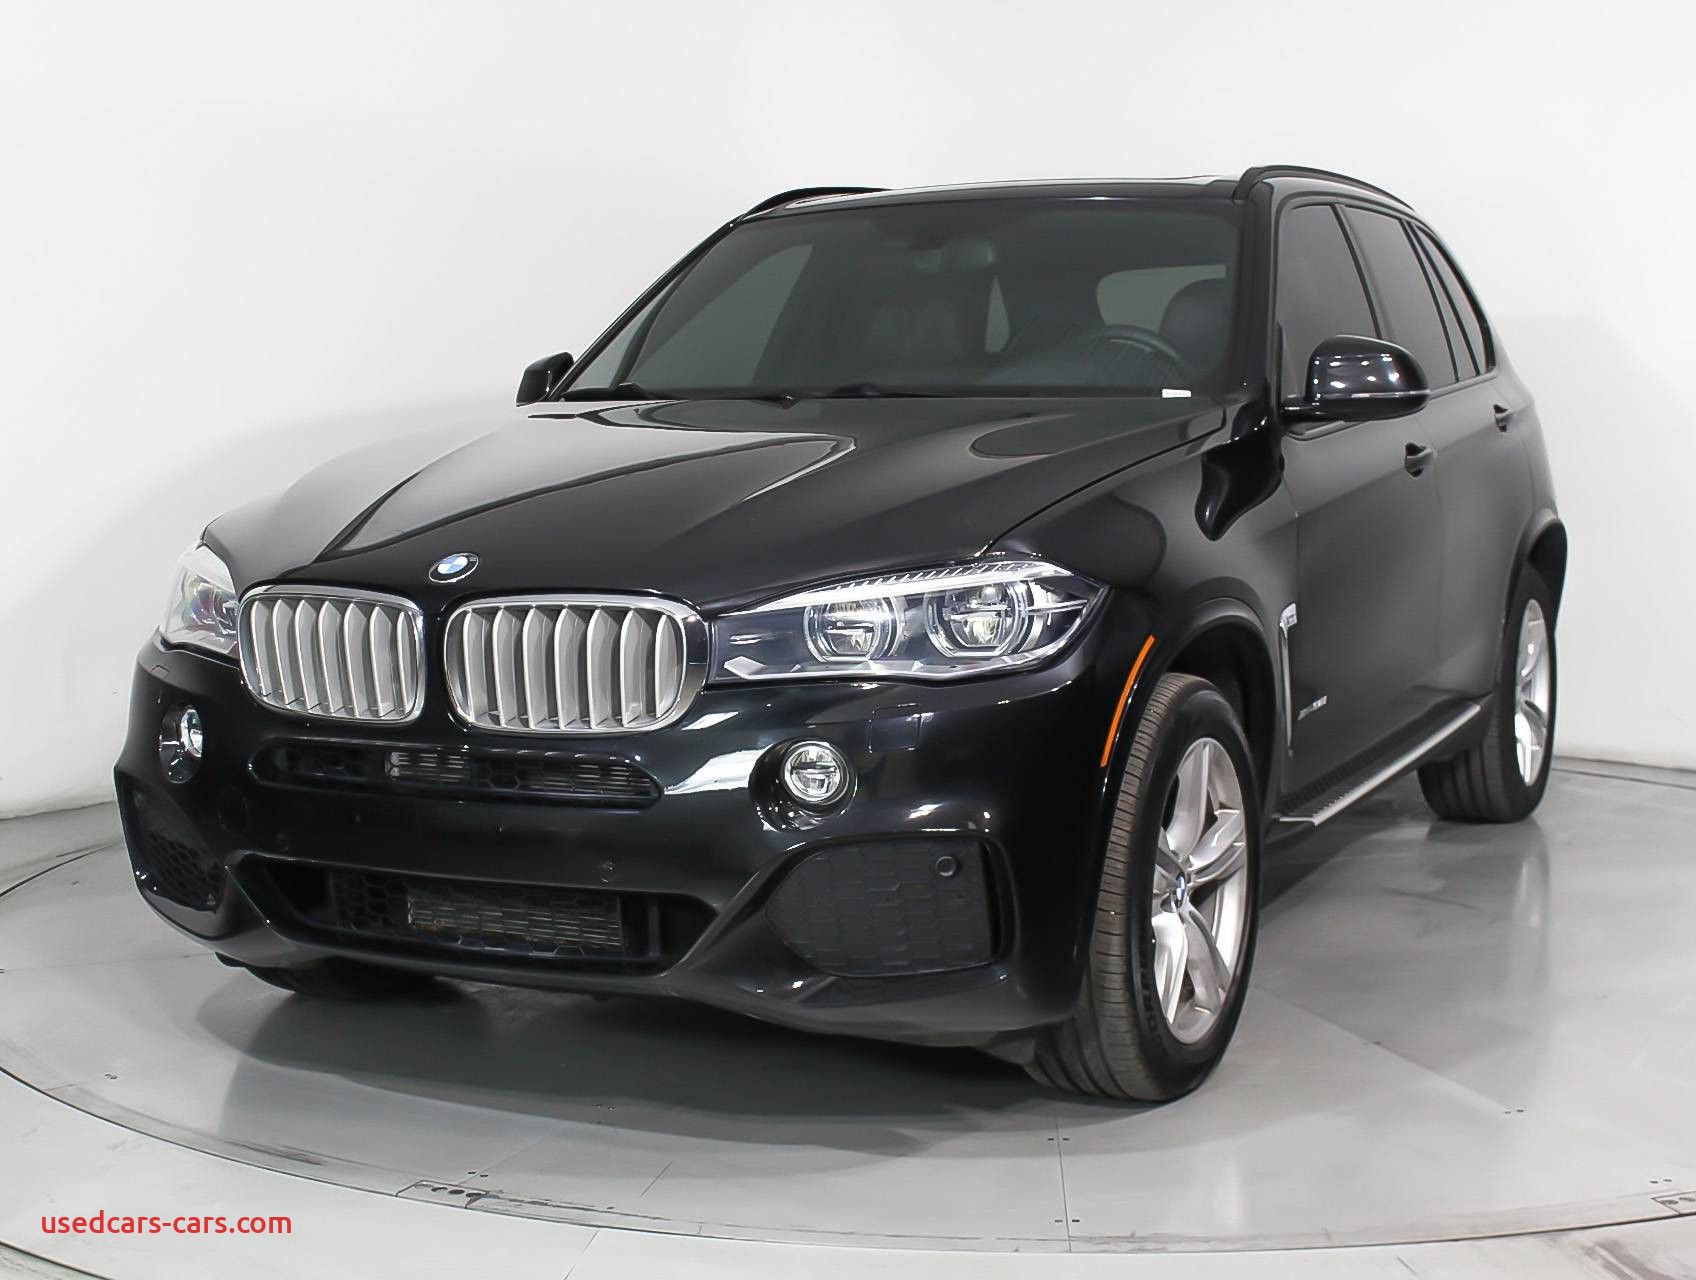 Used Cars for Sale X5 Fresh 2014 Bmw X5 M Sport for Sale Thxsiempre